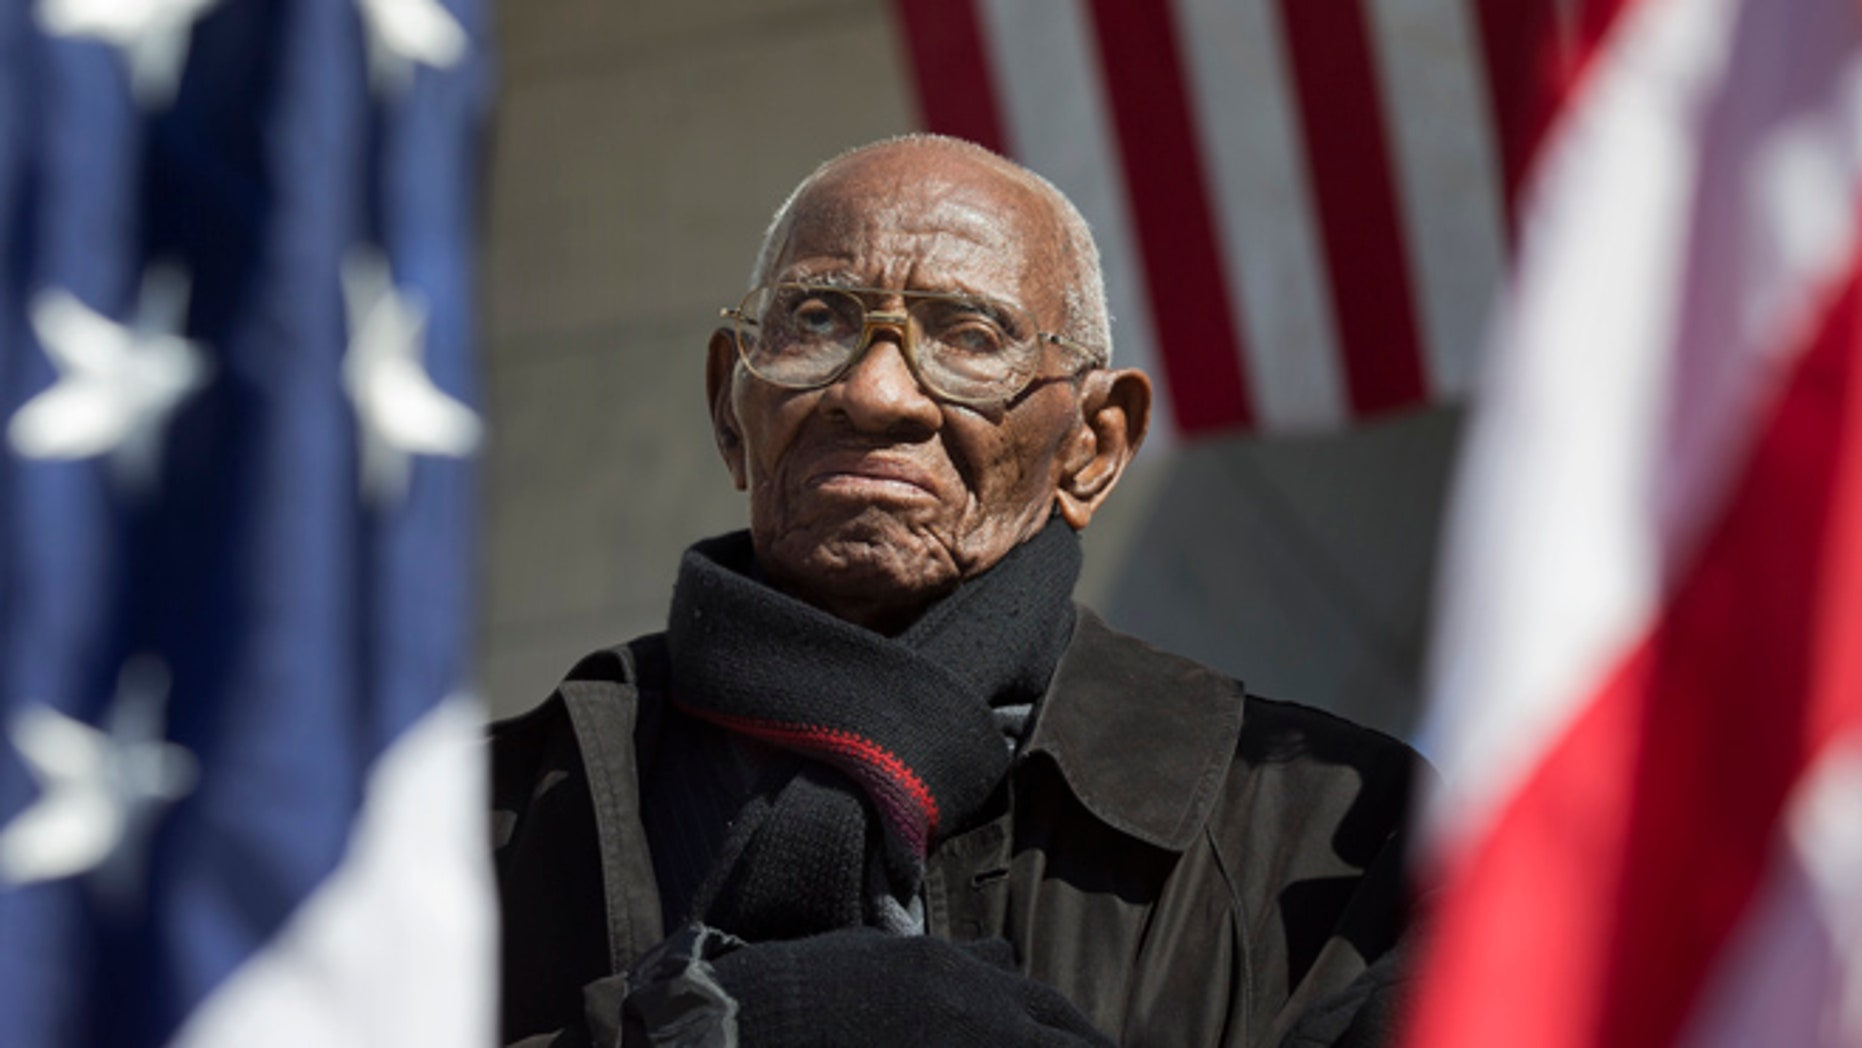 Richard Overton, the oldest living WWII veteran, listens during a Veterans Day ceremony at Arlington National Cemetery in Arlington, Va., in 2013.